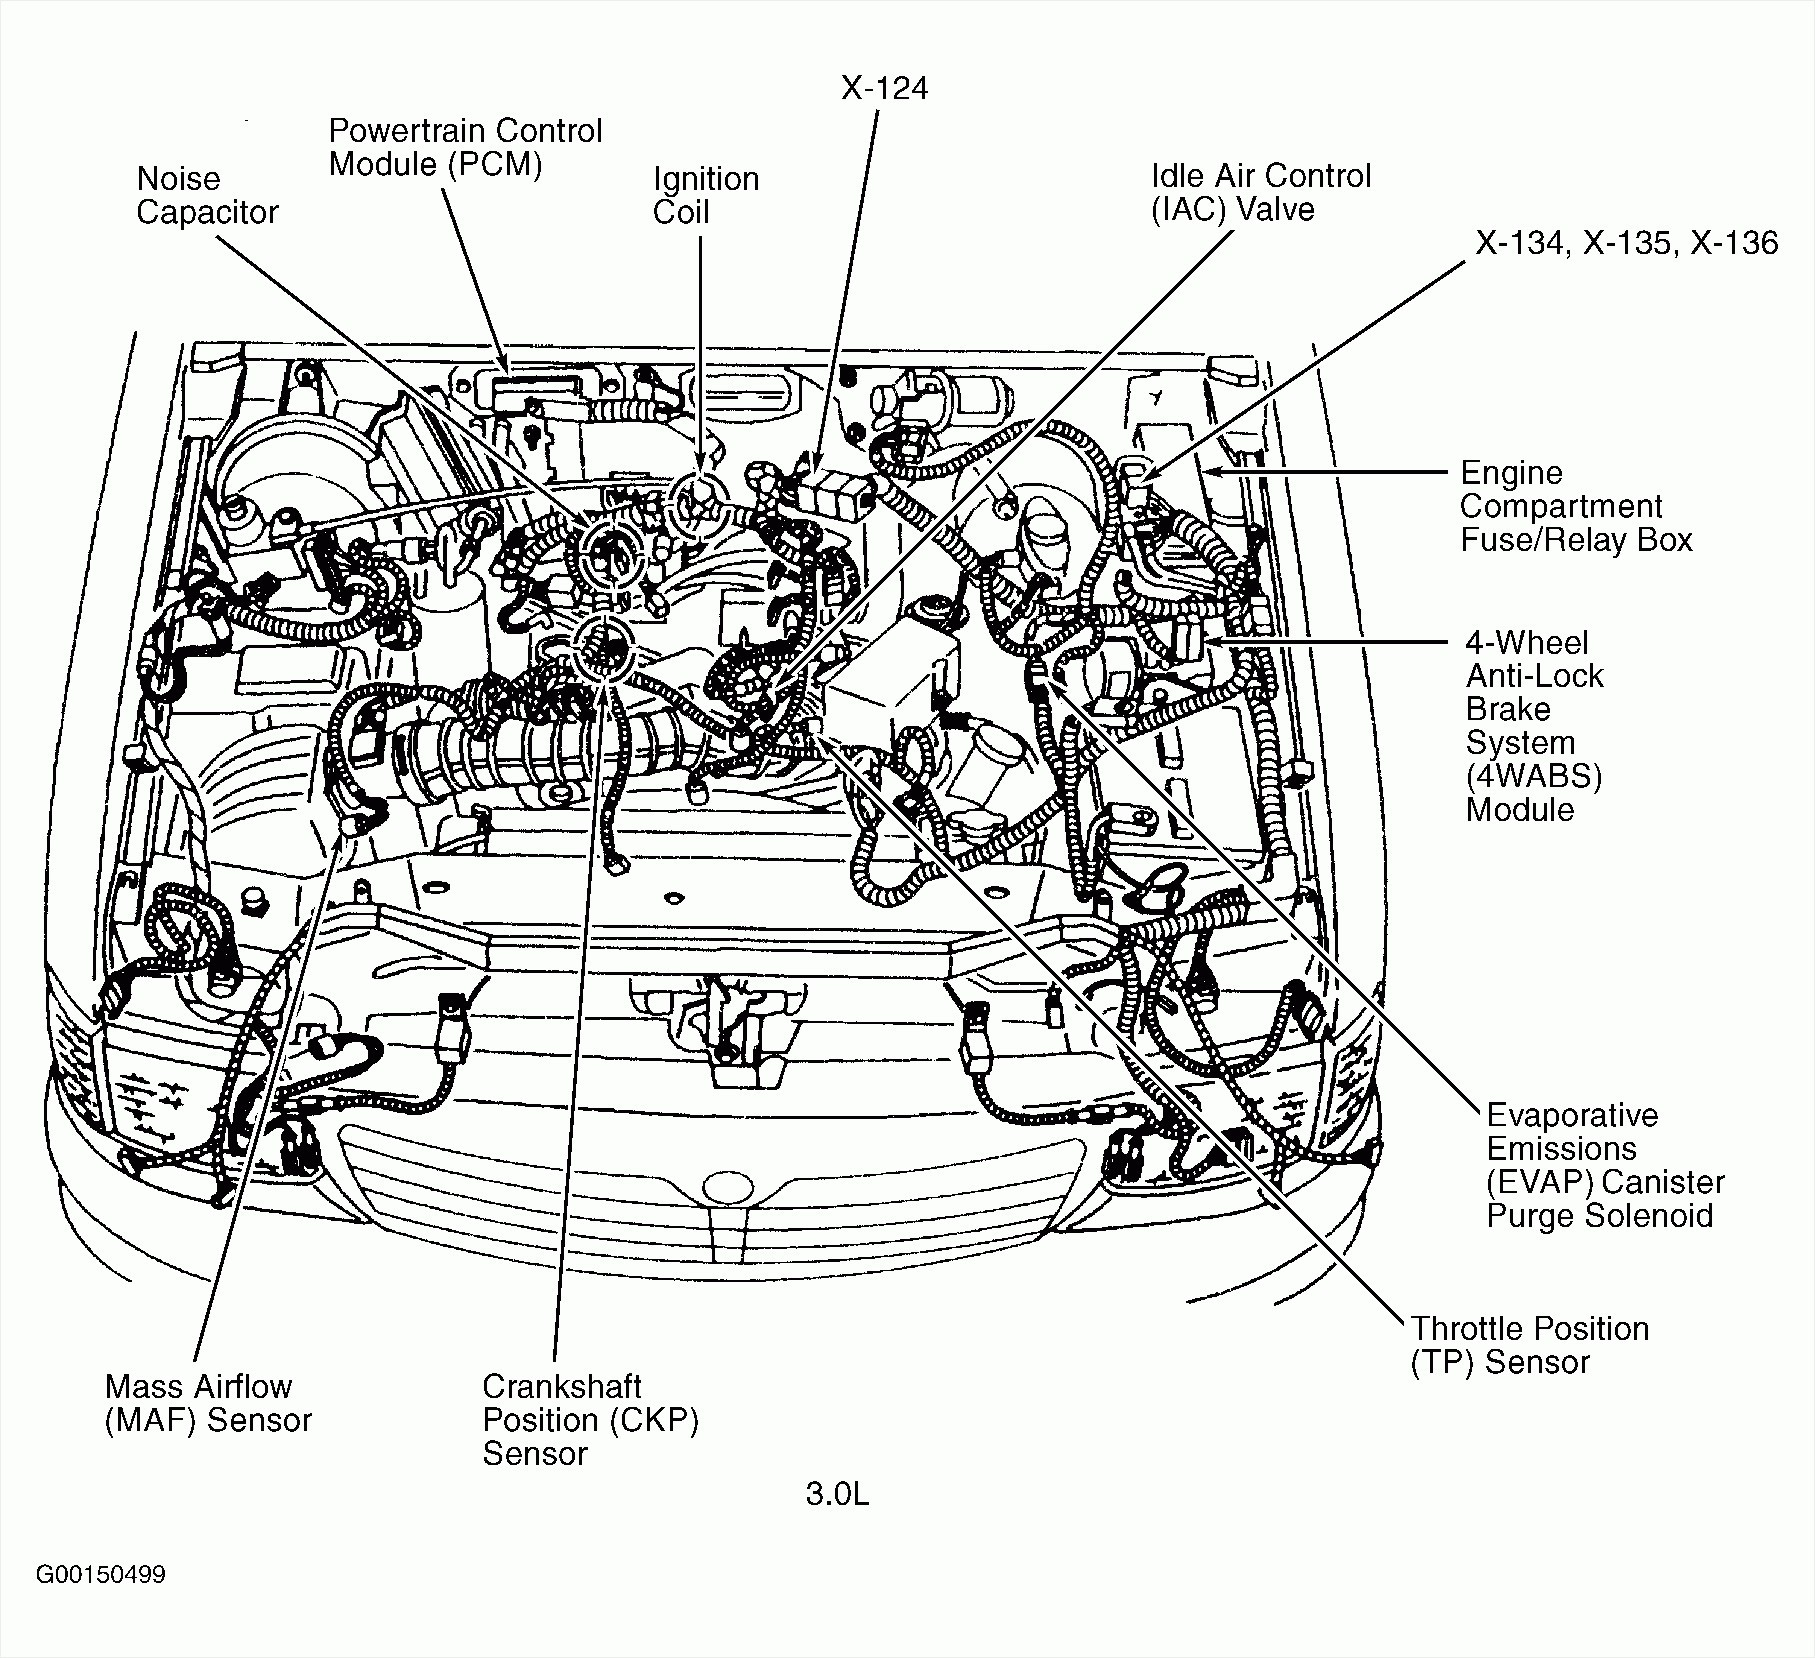 2001 Ford Escape Engine Diagram On 2002 Ford Focus Coolant